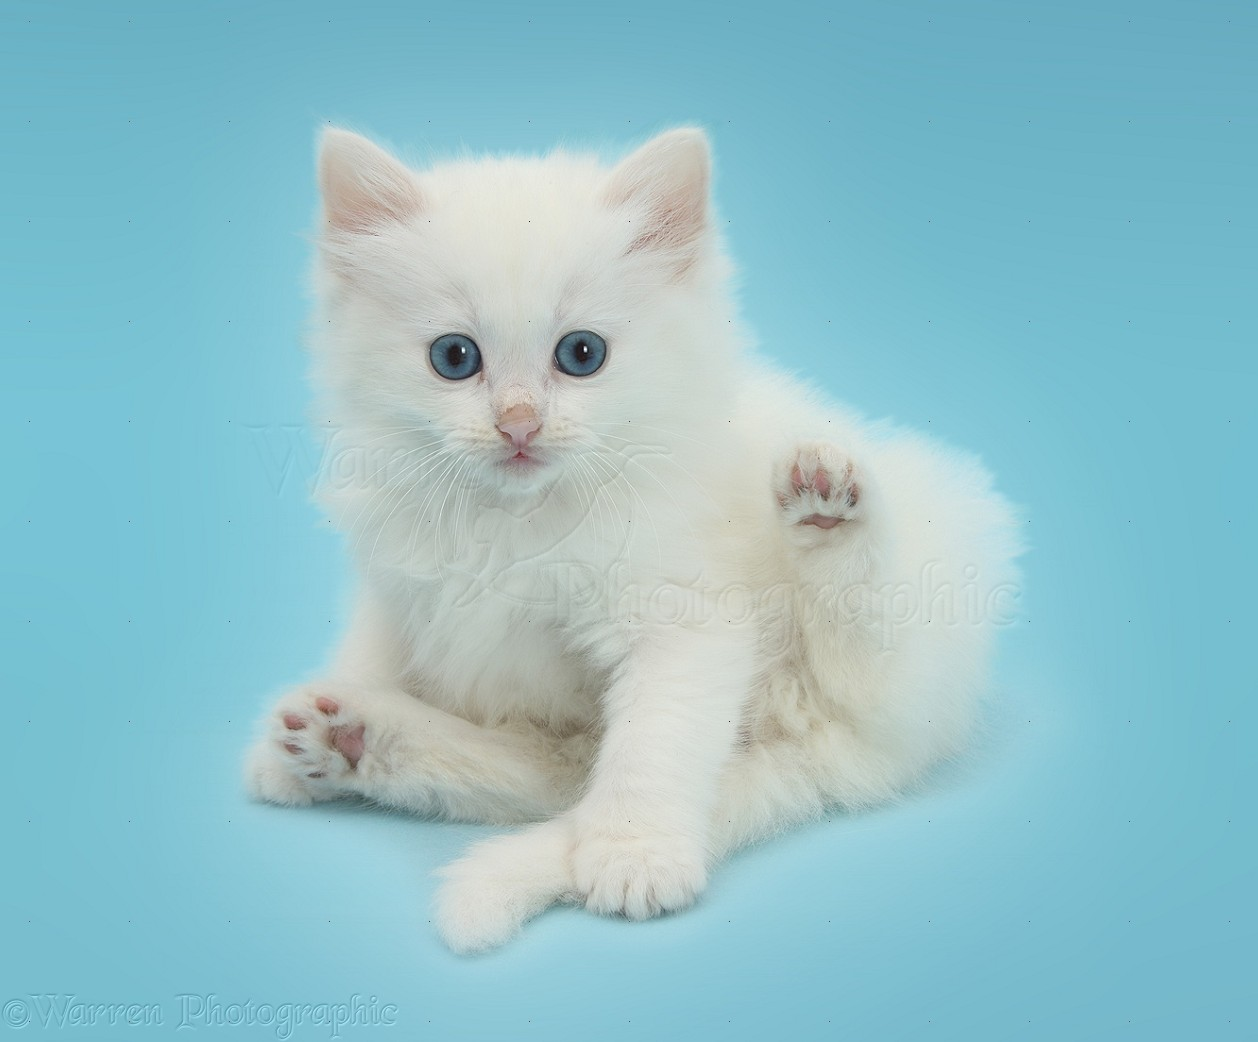 White Cat Wallpapers - Wallpaper Cave   White Cats Blue Background